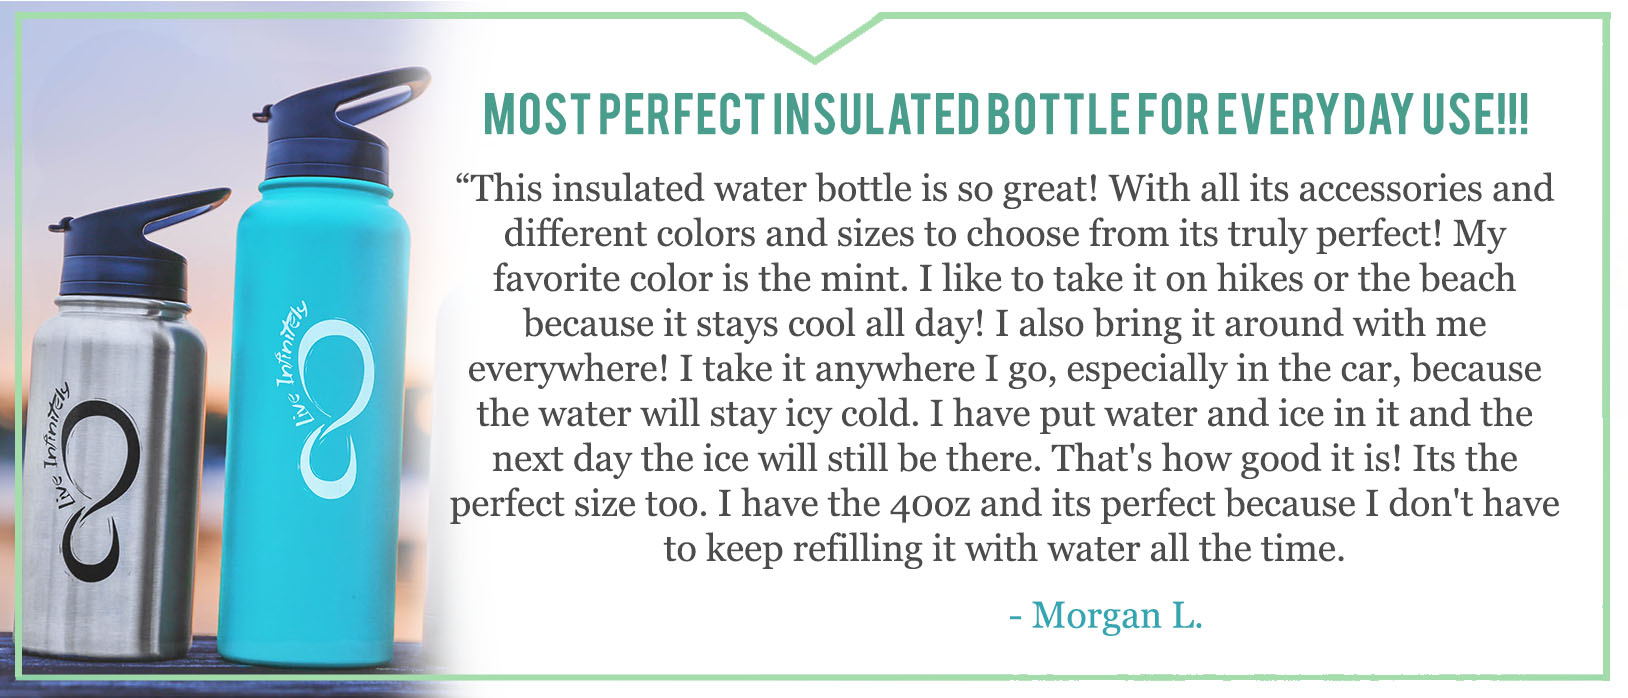 Insulated Bottle Review Costumer Review